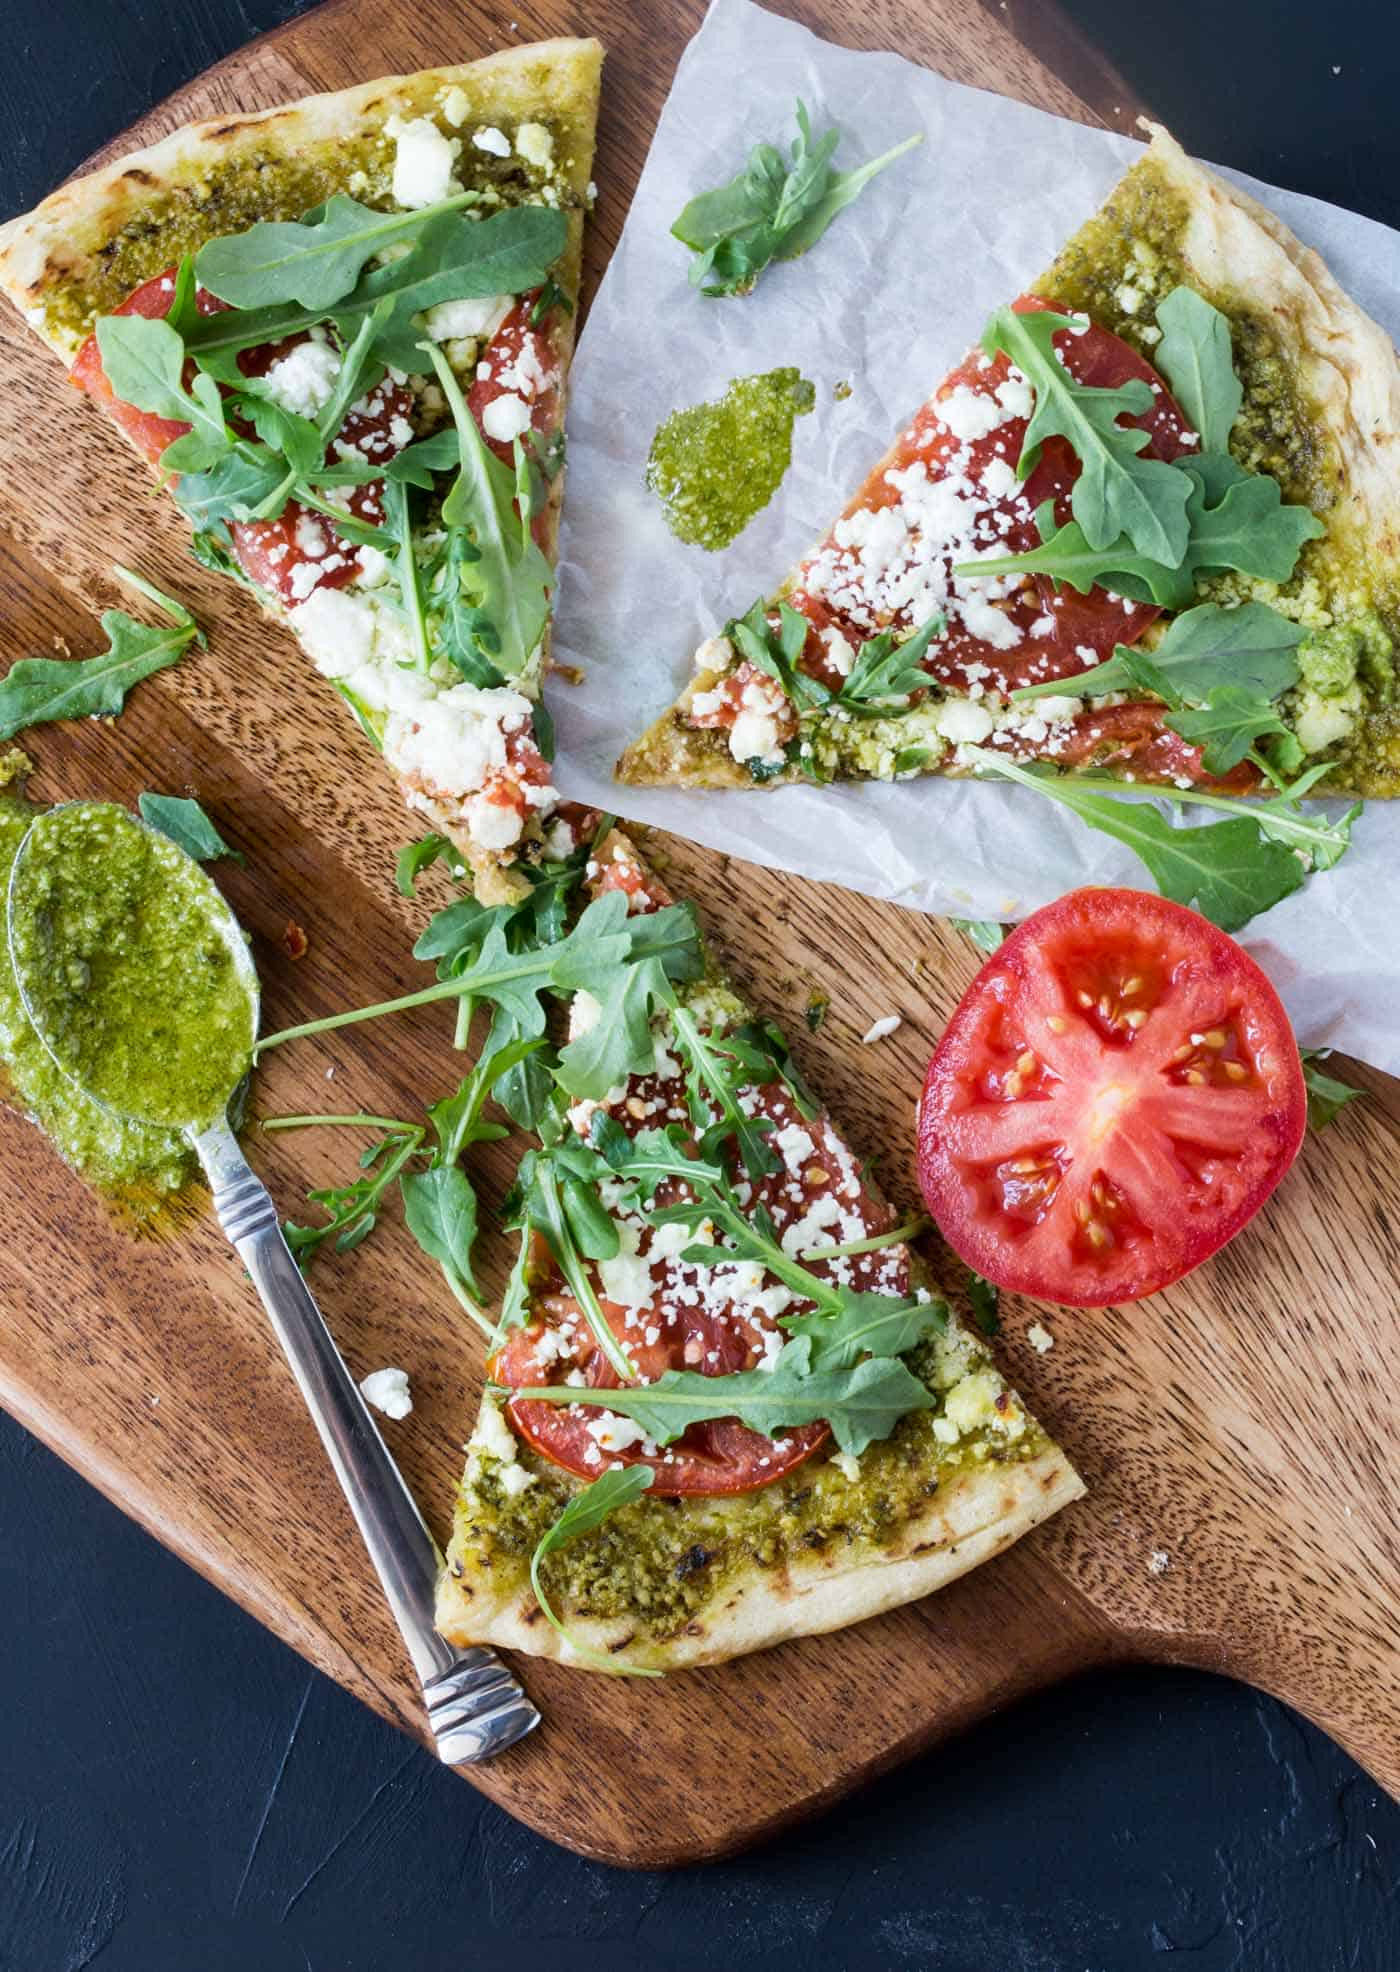 Pesto Pizza with Goat Cheese, Tomatoes and Arugula on a wooden cutting board.